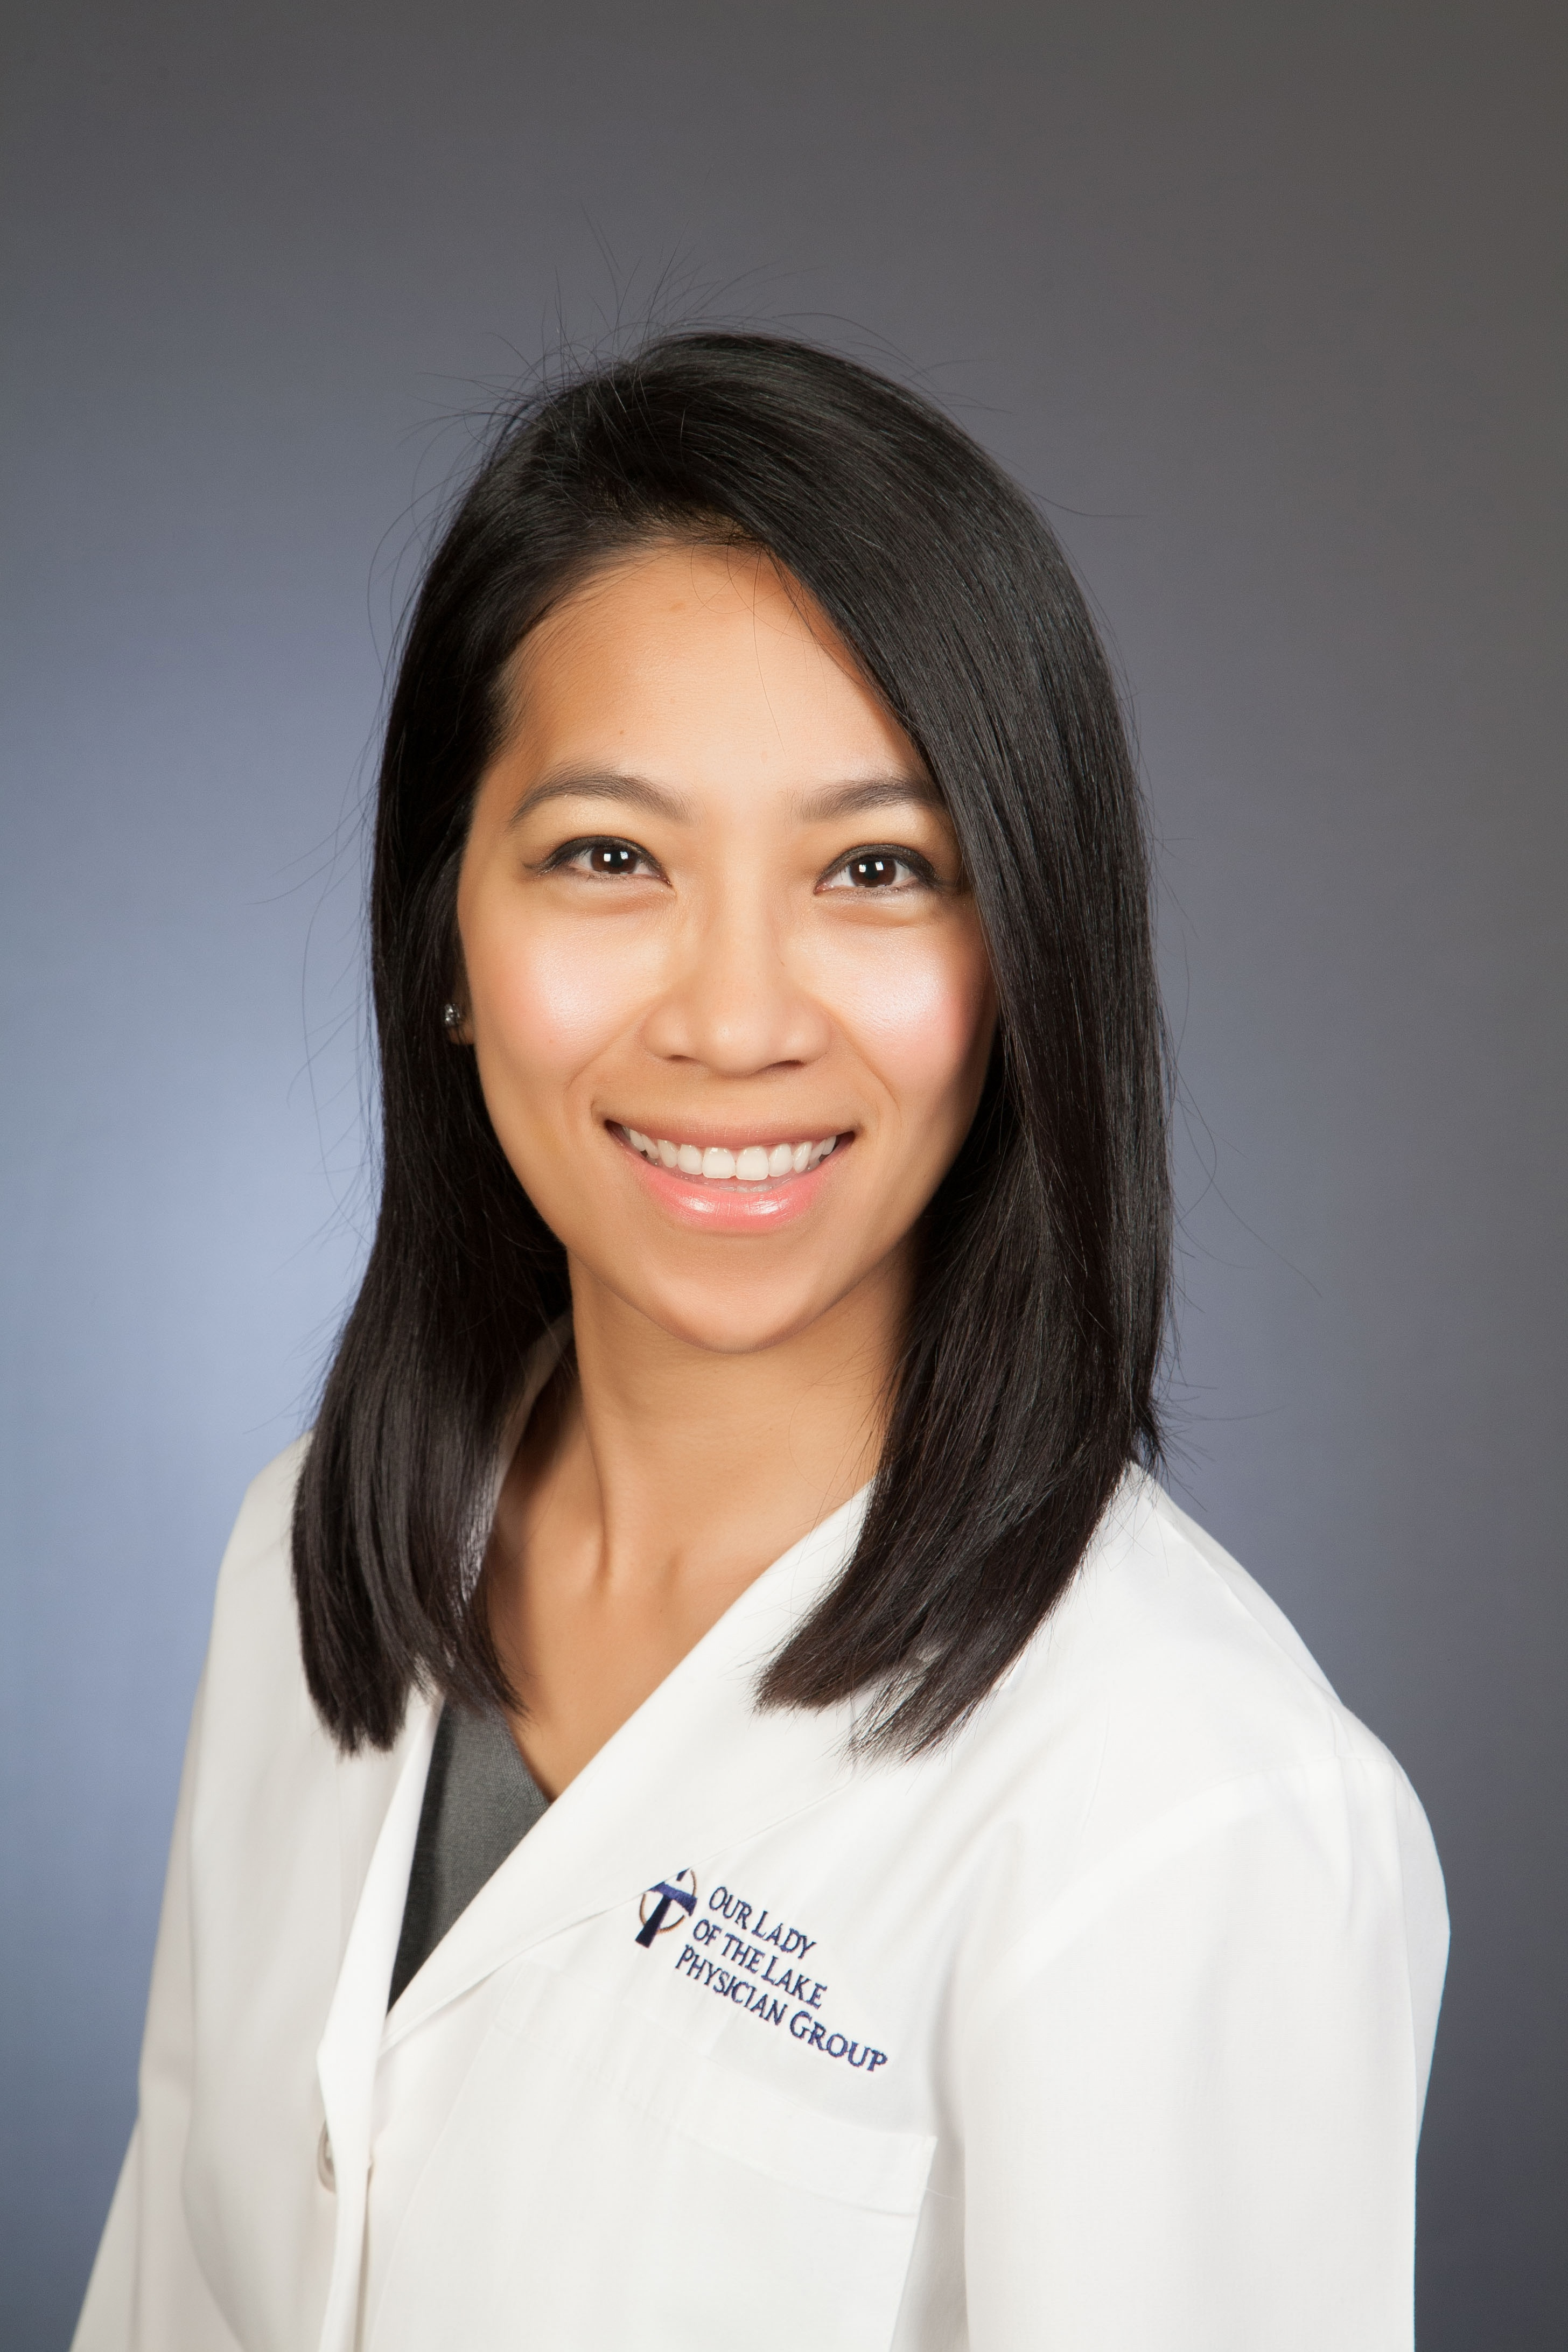 AnhThao Nguyen, M.D.